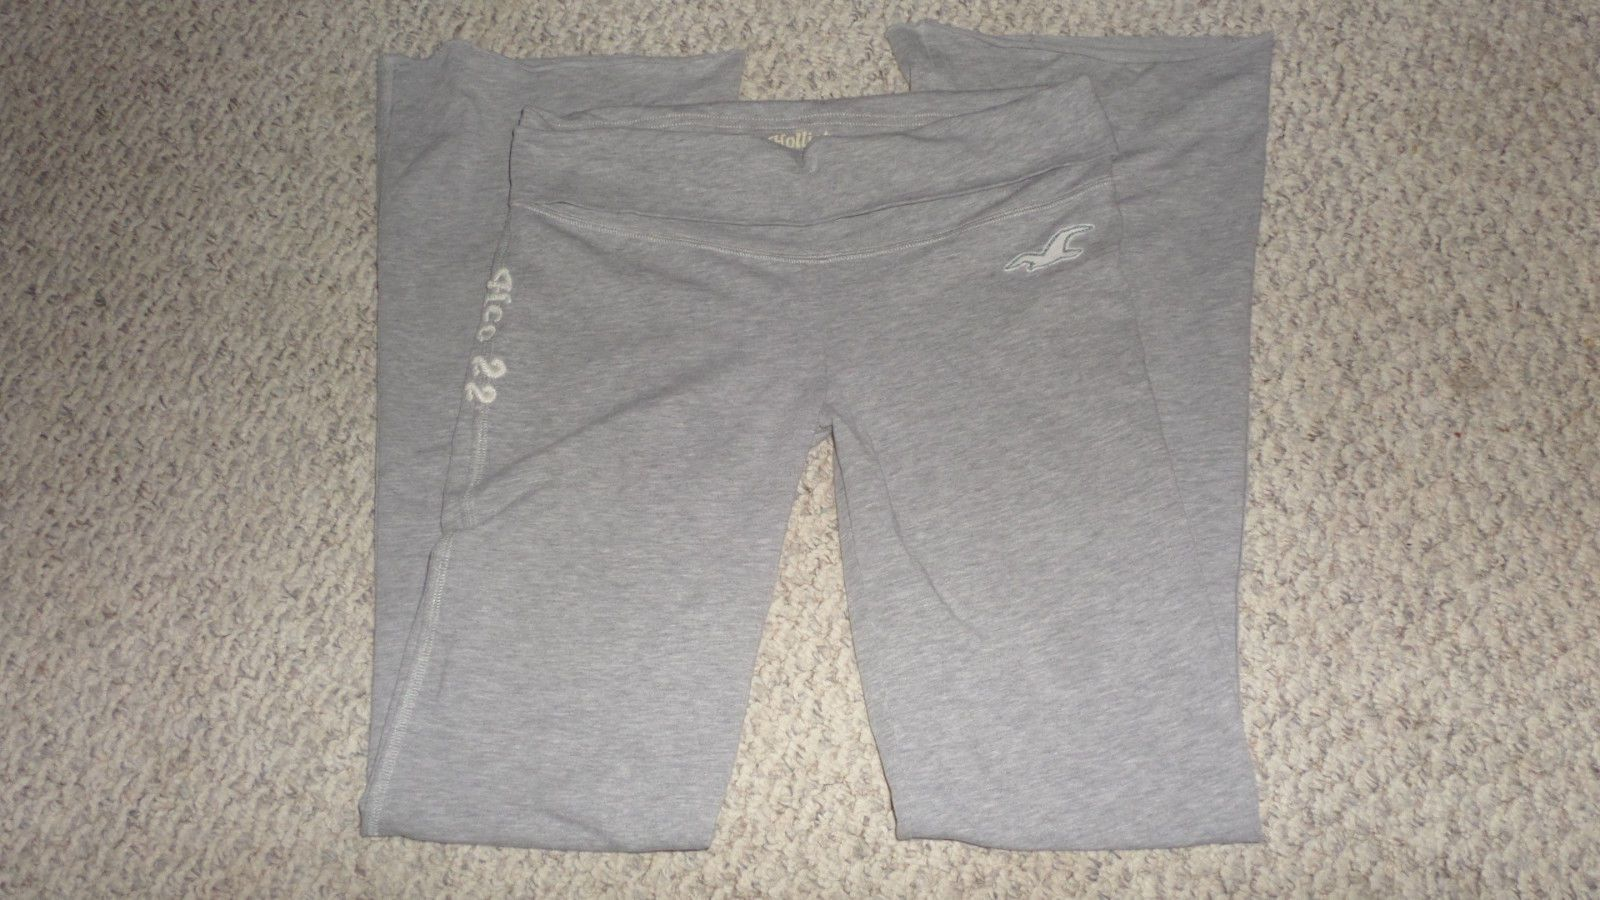 Hollister Yoga Pants size Medium https://t.co/BiqEHdBm3x https://t.co/P9HguLFPn2 http://twitter.com/Foemvu_Maoxke/status/774203459860070400